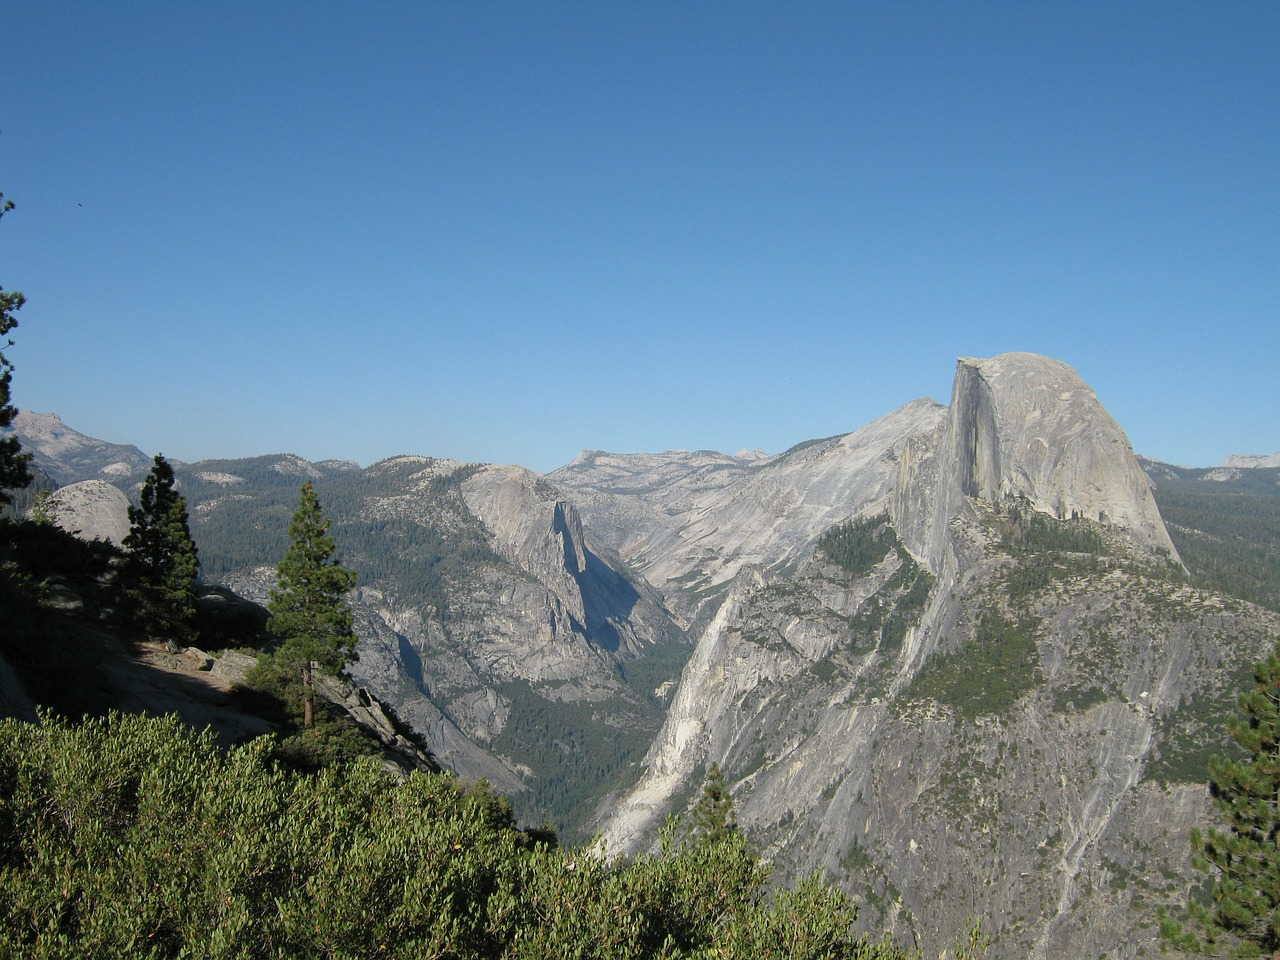 yosemite national park yosemite mountains free photo